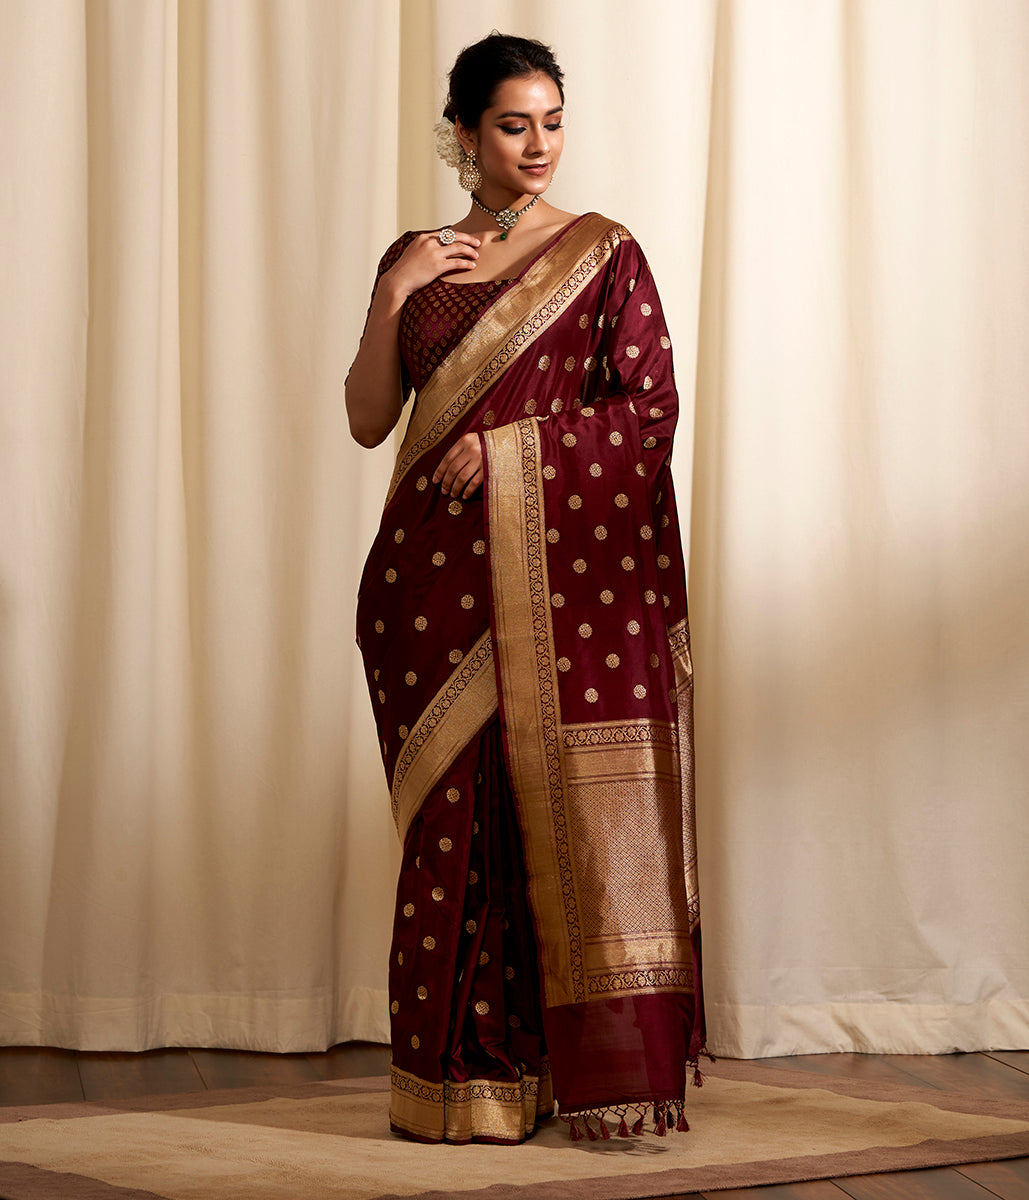 Handwoven asharfi boota banarasi saree in wine